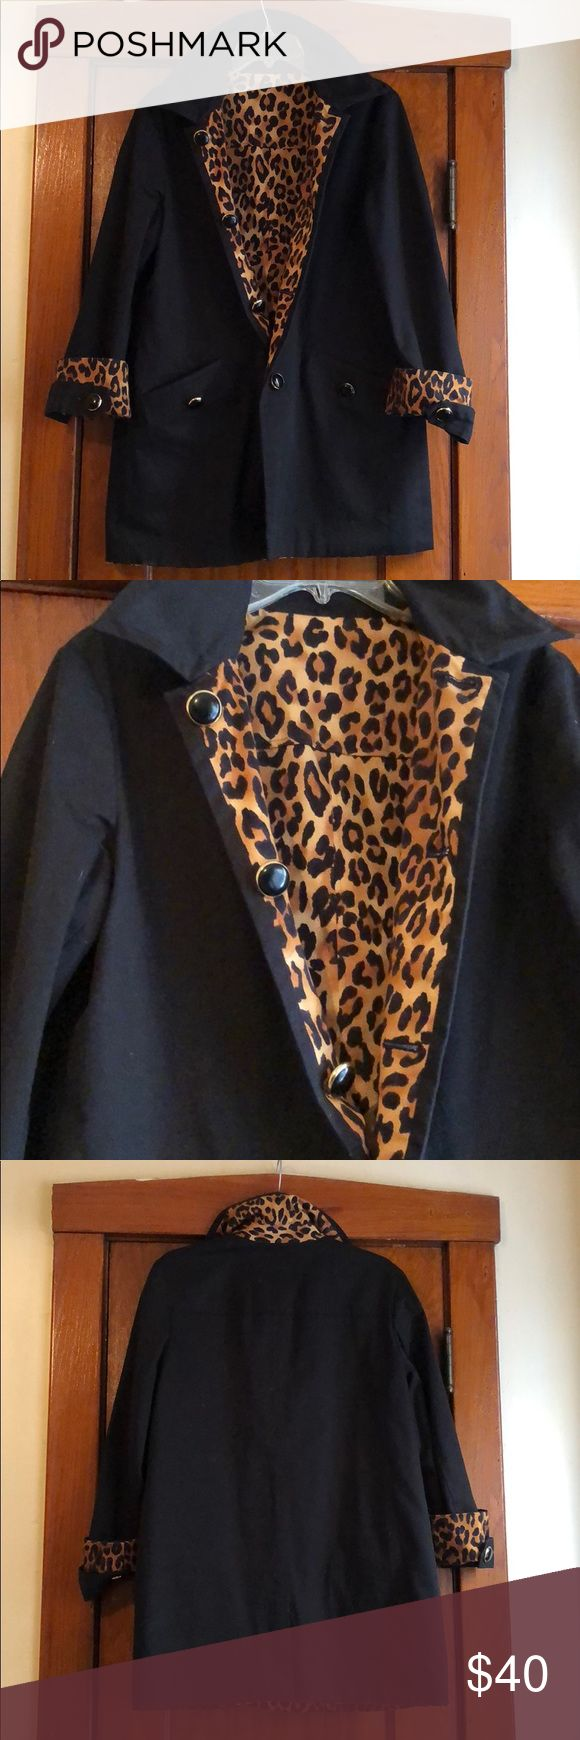 Black and Cheetah Print Coat Reversible Woman's Coat Black.and Cheetah Print. Can be worn on either side. Both sides have buttons and pockets. EUC measurements to come. Material is similar to a rain coat. Medium weight and will keep you warm. No tag or  brand. Jackets & Coats Trench Coats